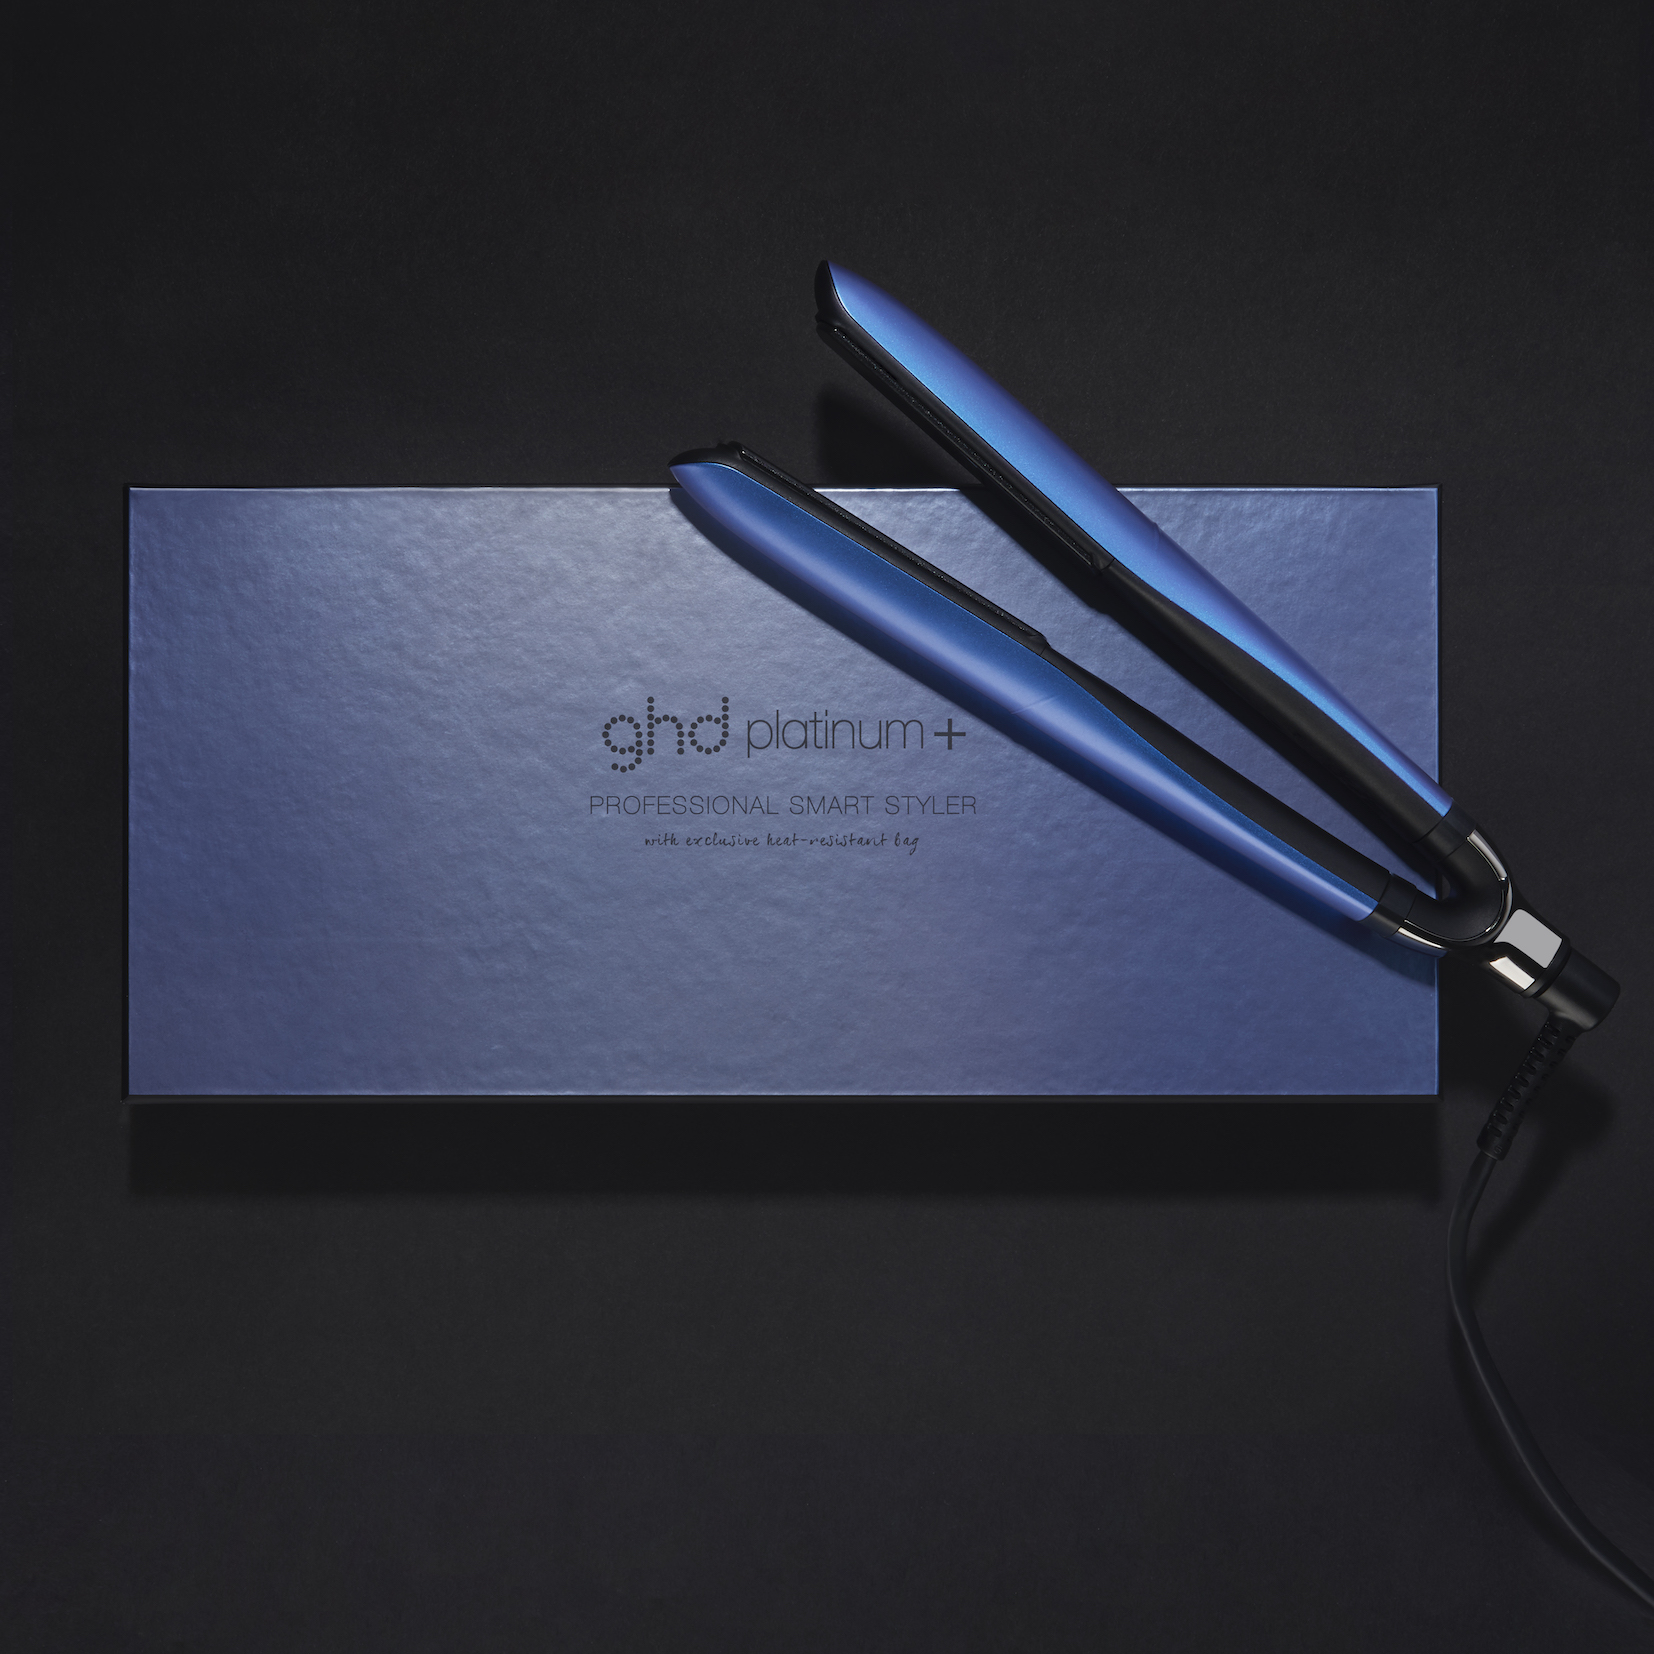 ghd Upbeat Collection platinum+ styler_Campaign Imagery_Cobalt Blue (4)